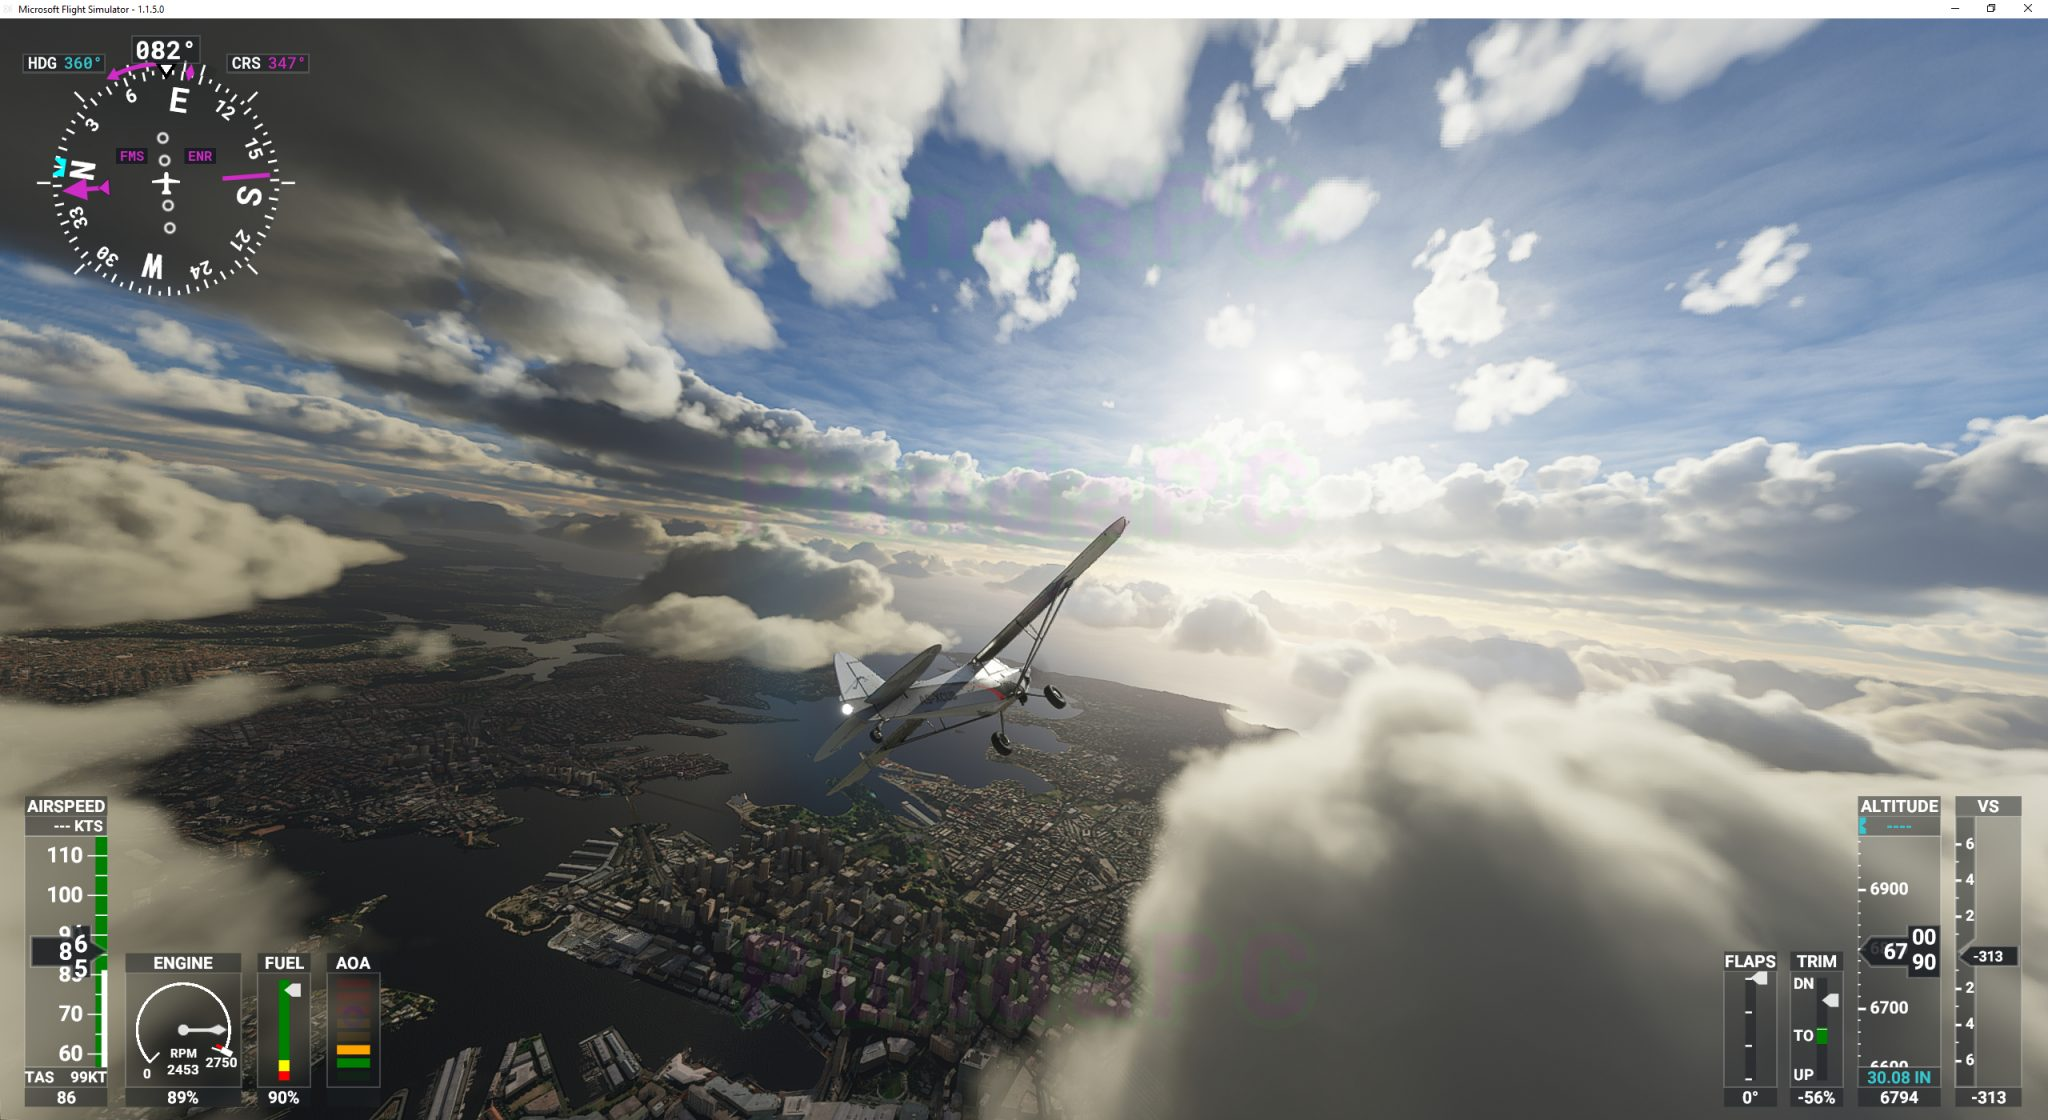 SIMULATOR - Microsoft Flight Simulator. - Página 9 Through-the-clouds-2048x1120